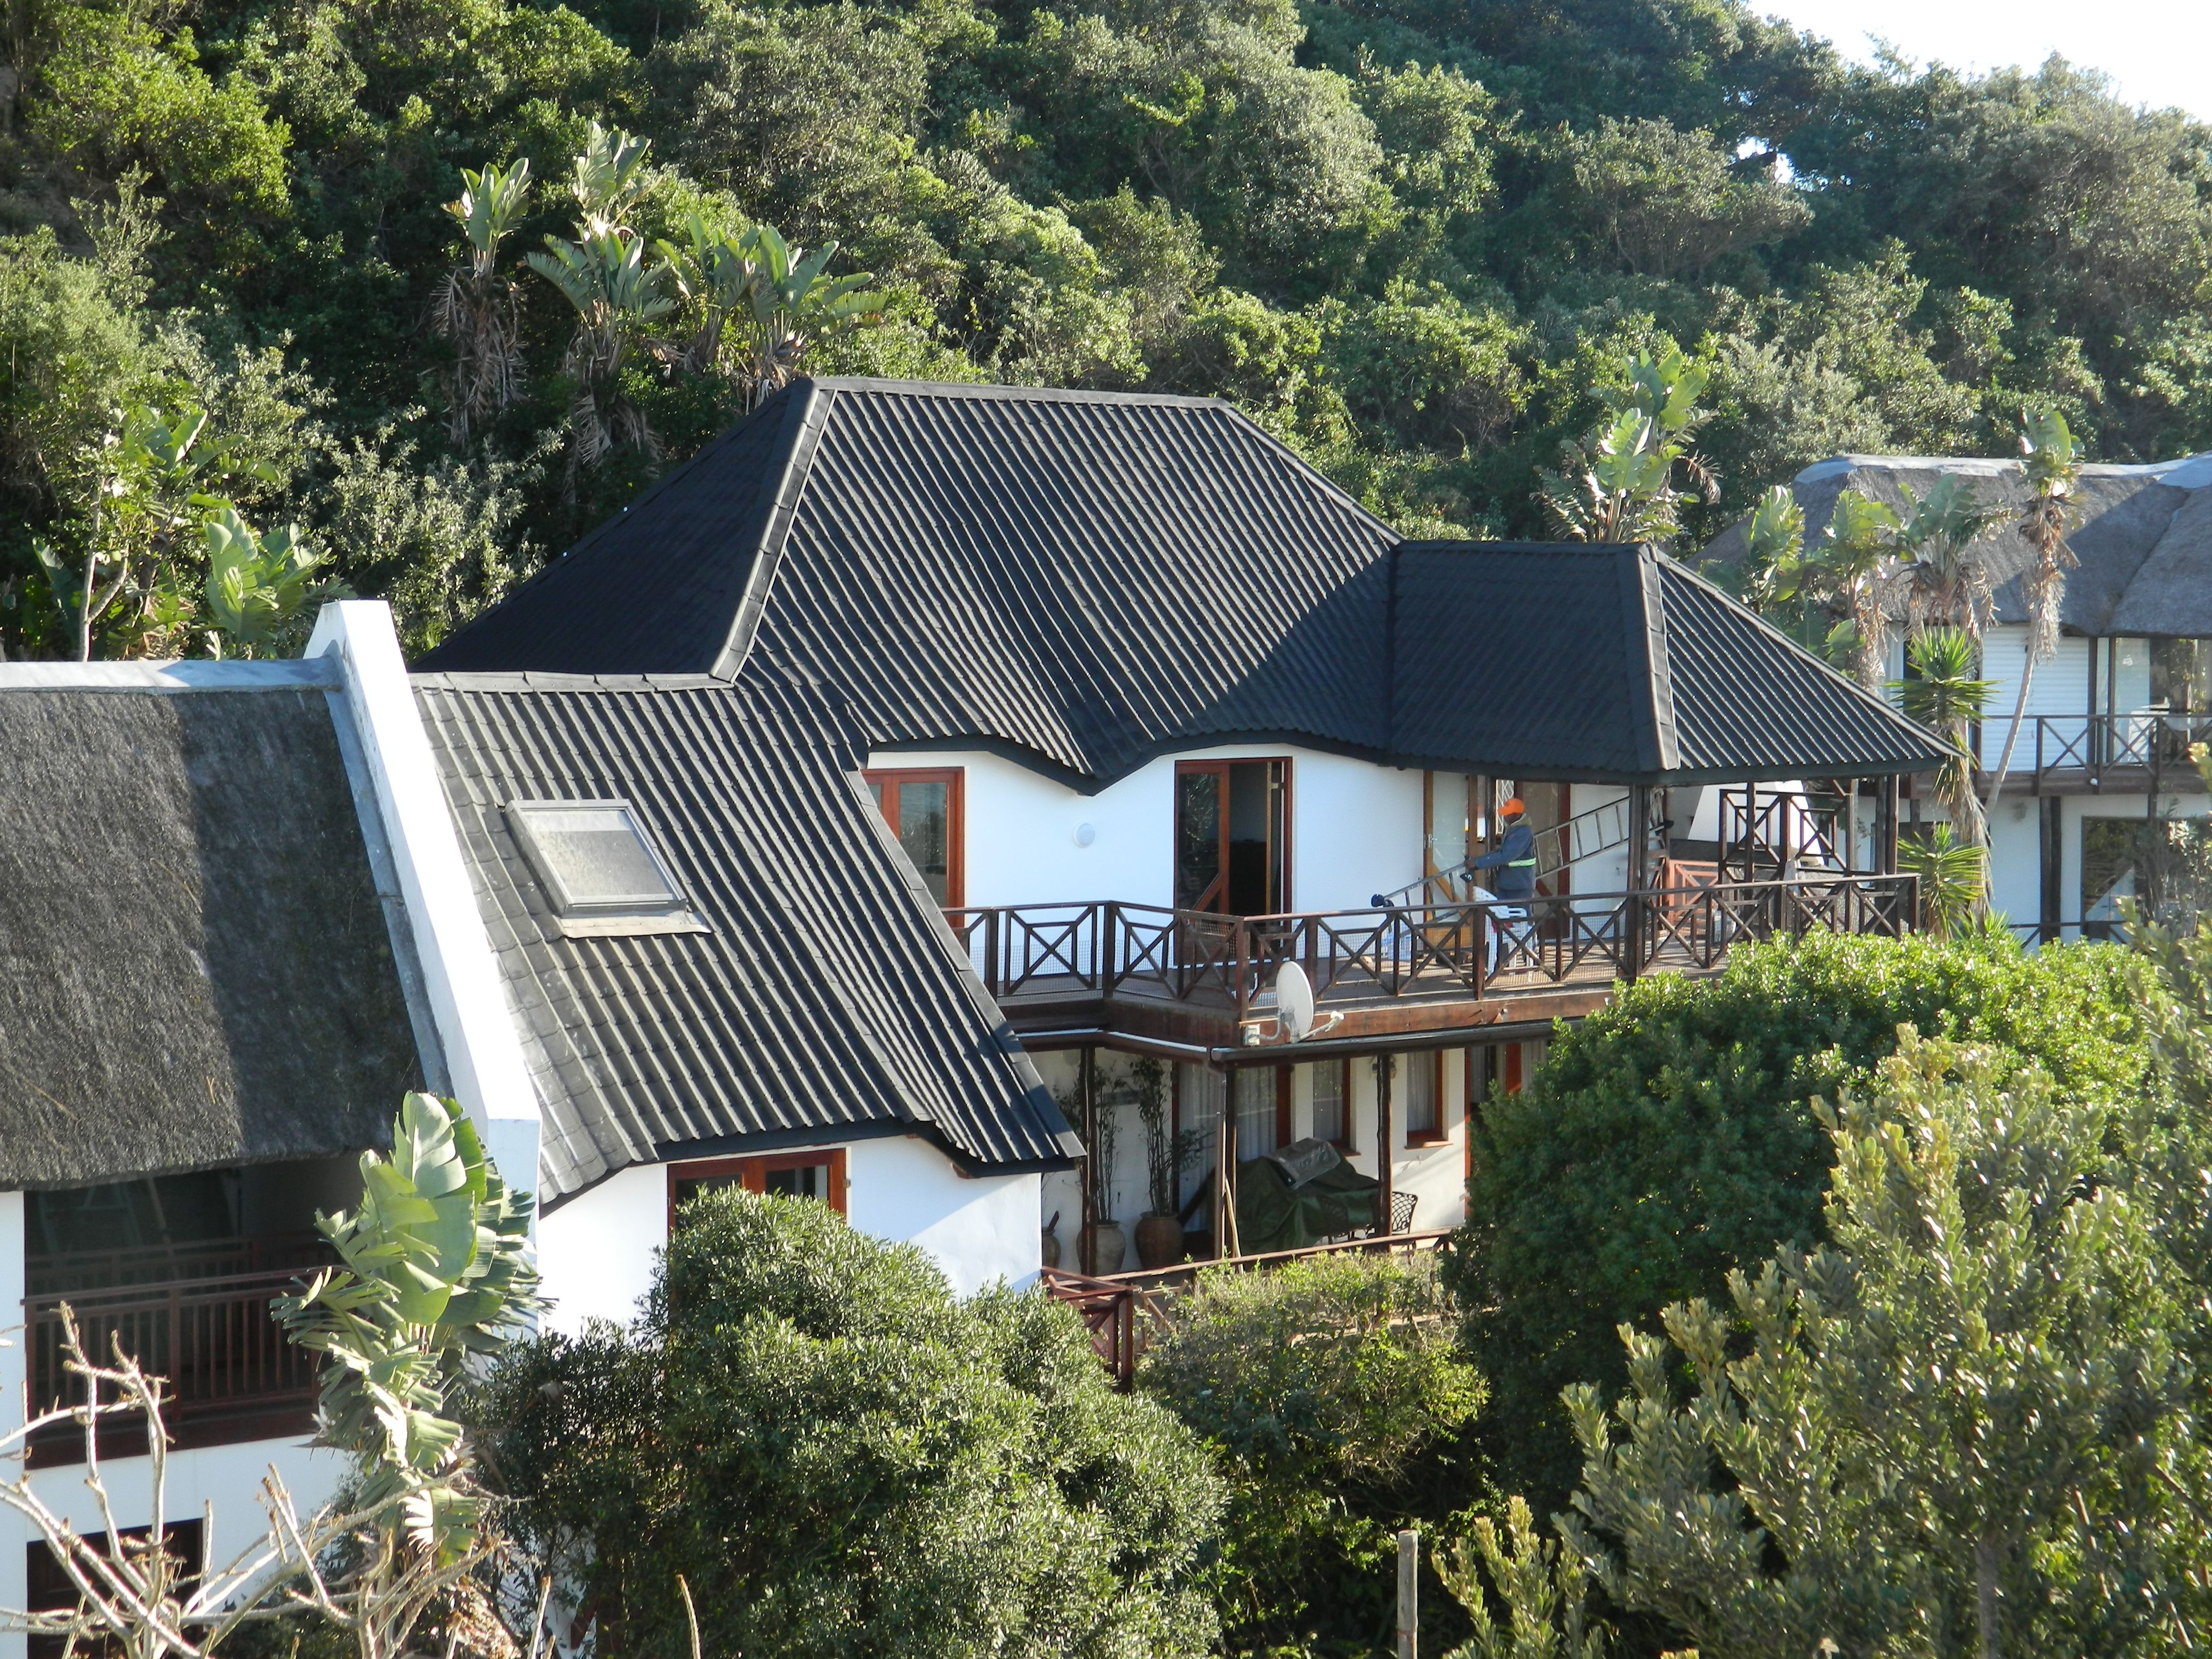 Thatched Roof Converted To Onduvilla Tiles In Chintsa Eastern Cape Of South Africa Thatched Roof Architectural Inspiration House Styles